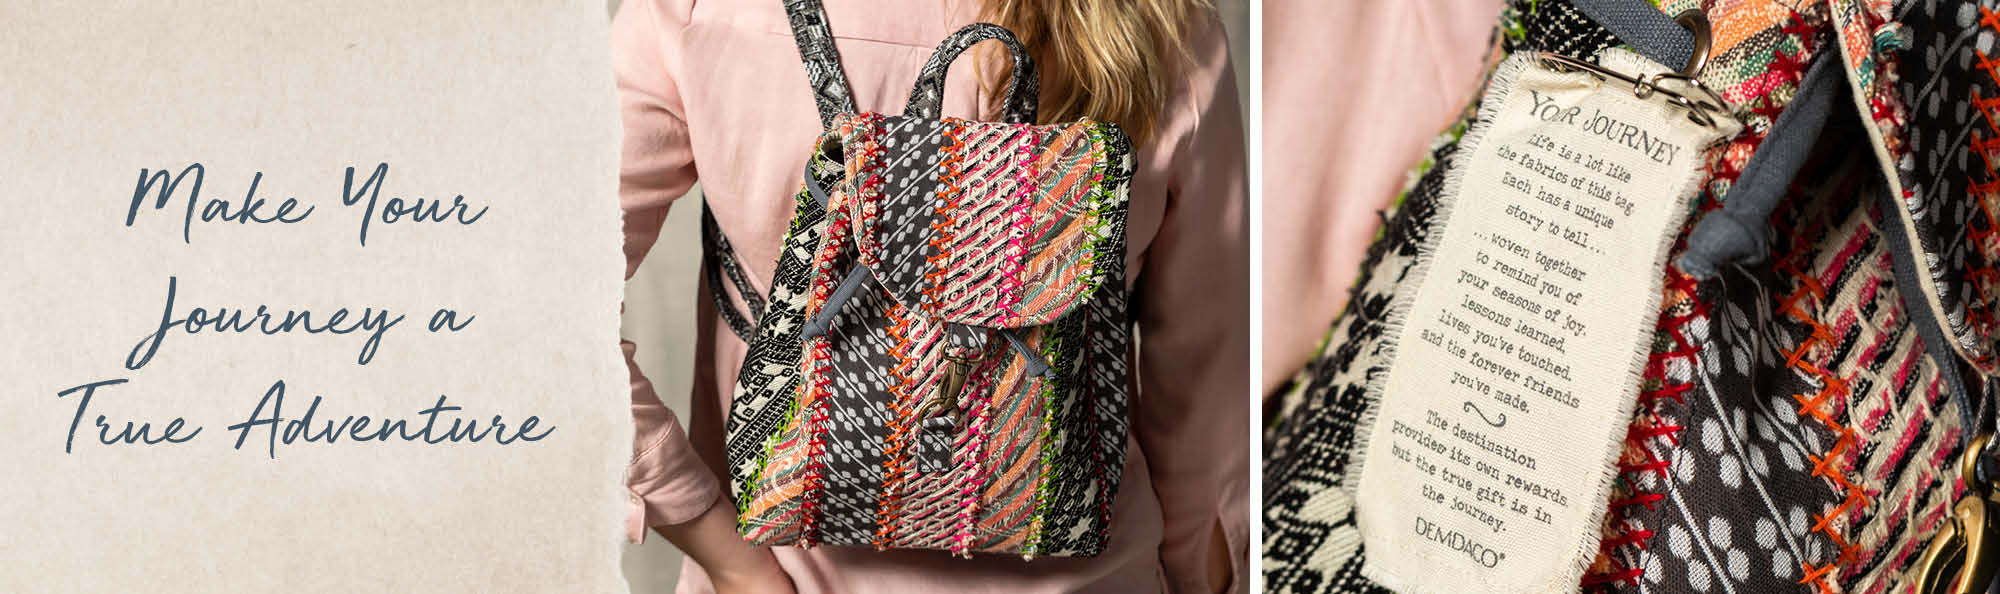 Make Your Journey a True Adventure. Woman wearing a patchwork backpack.